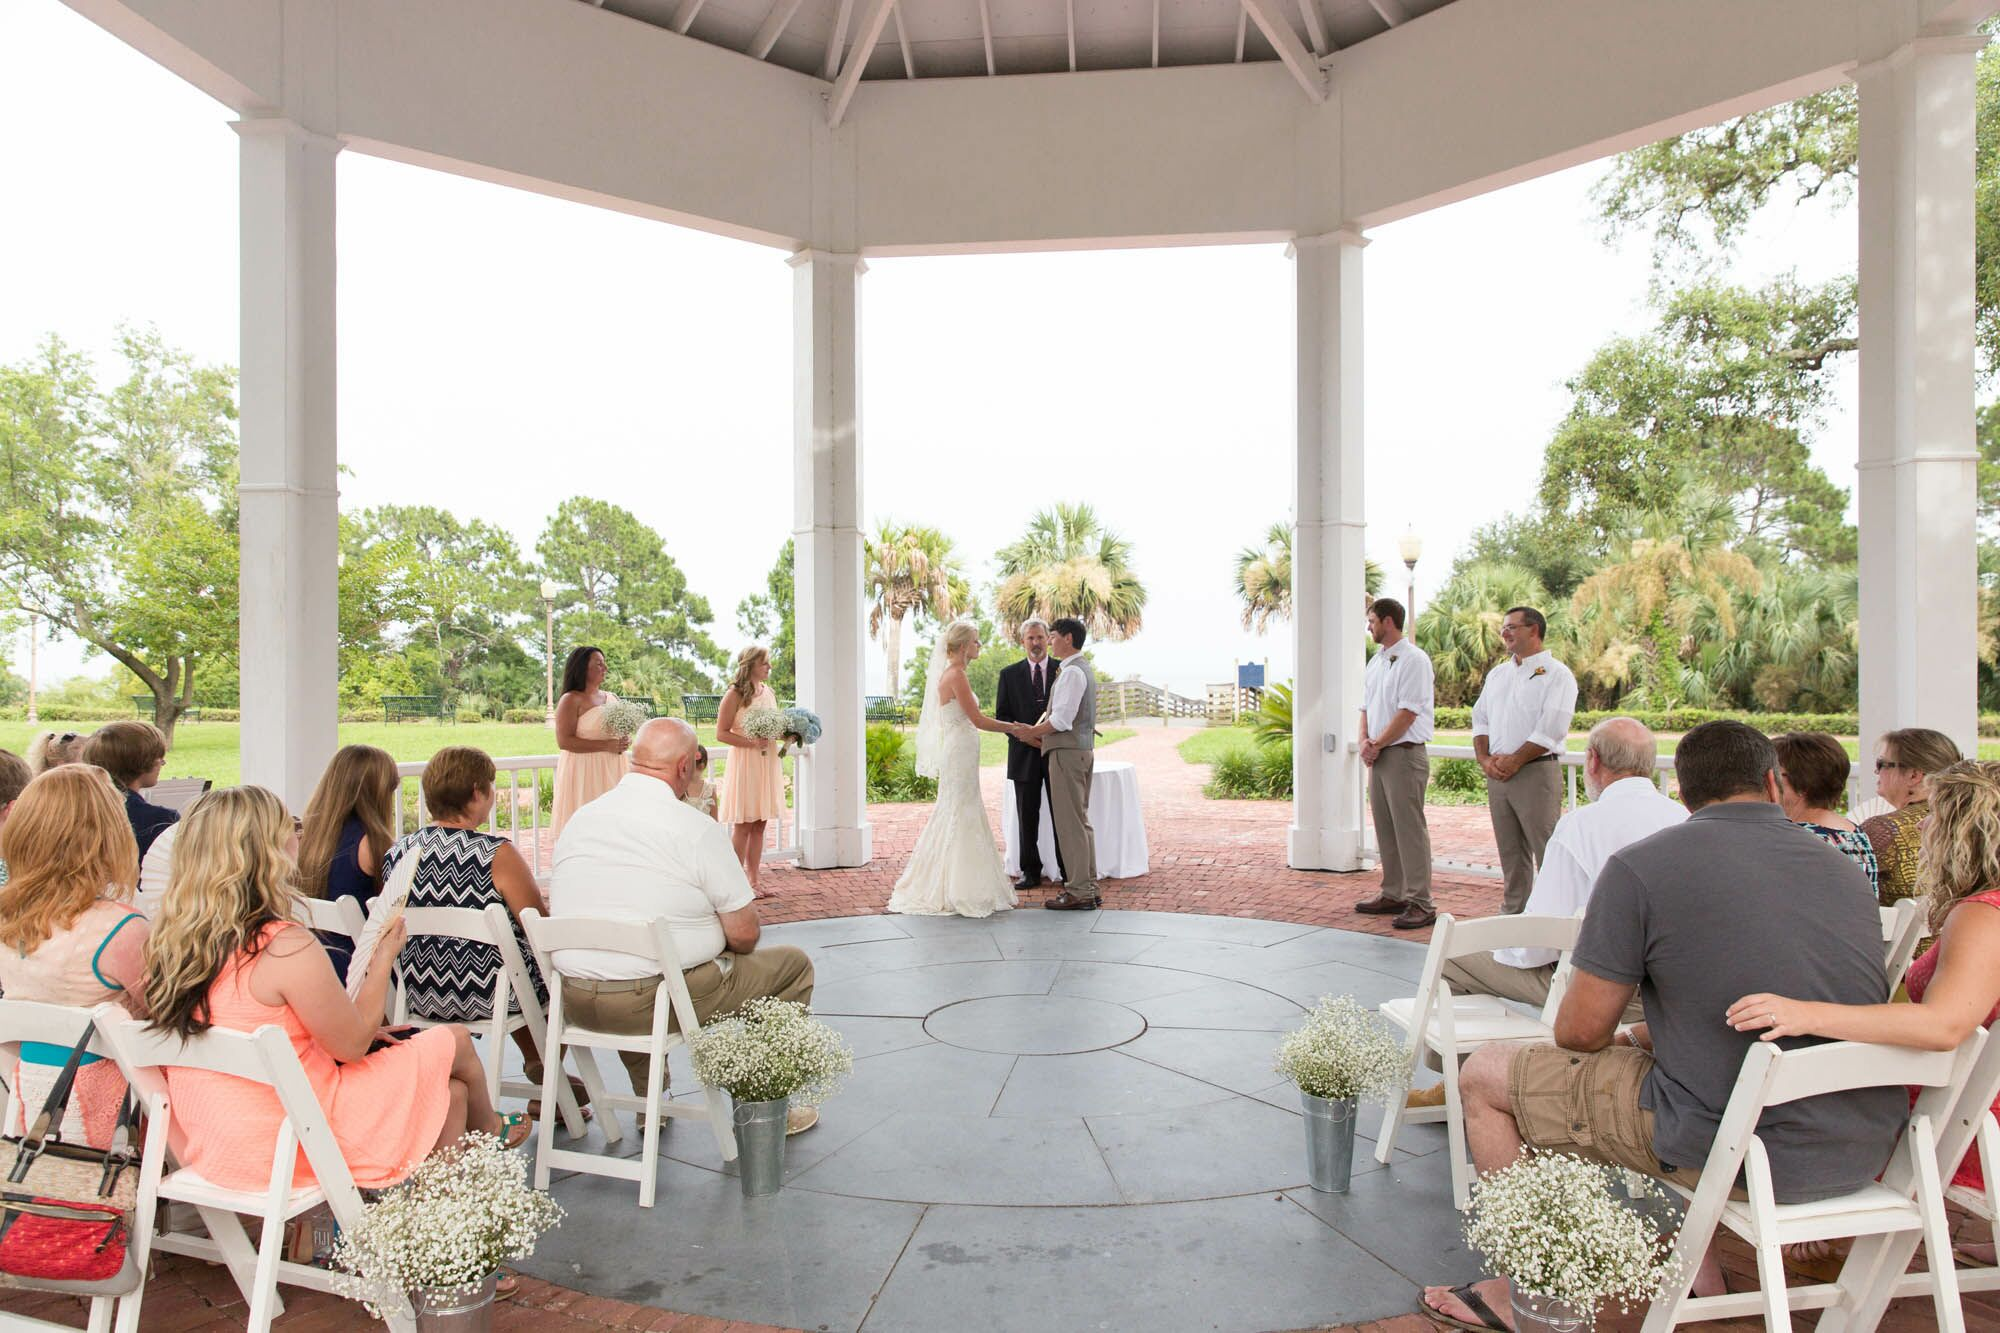 A Simple Wedding at the Owl Cafe in Apalachicola, Florida